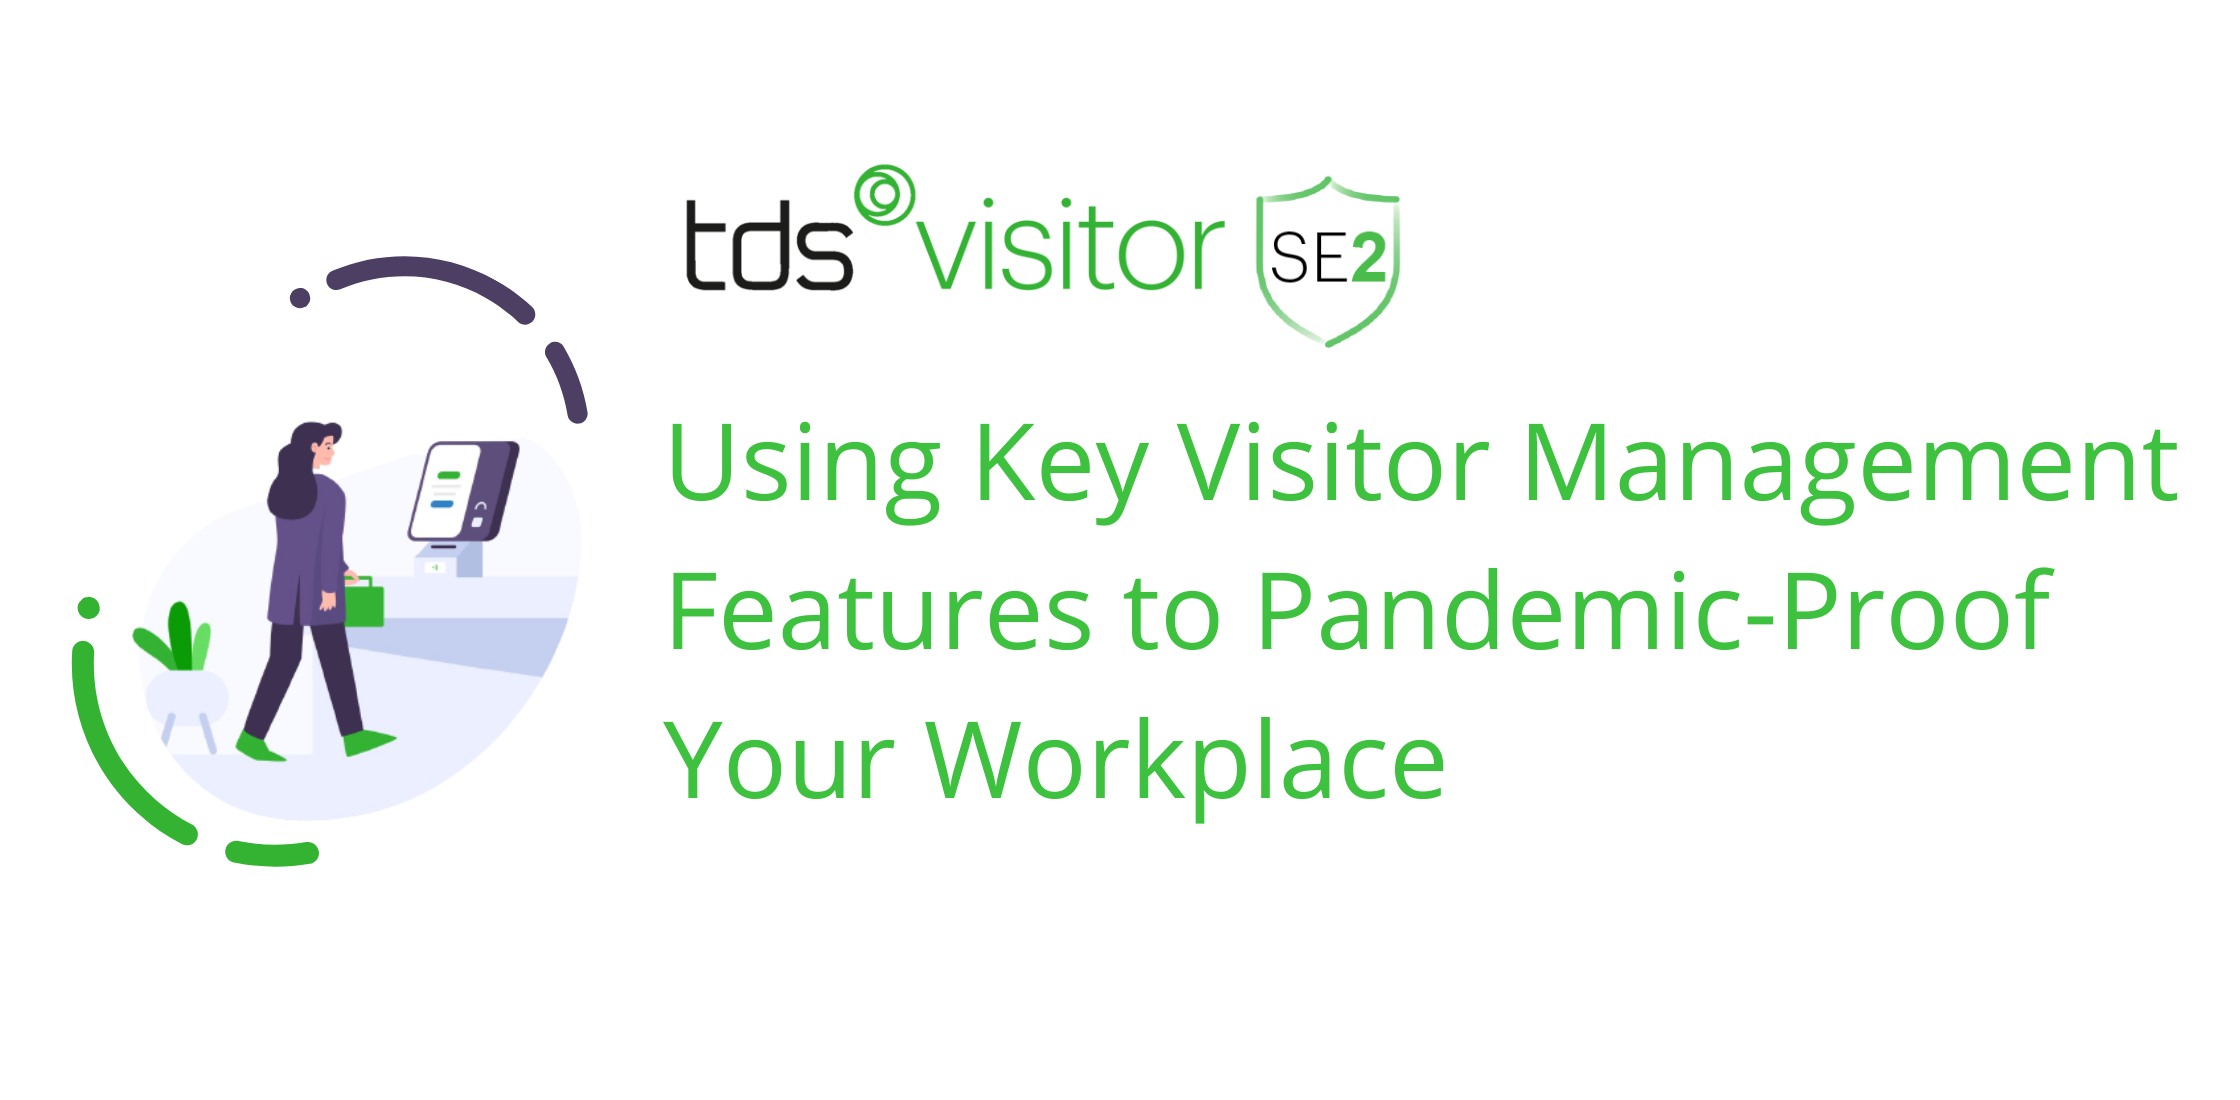 TDS Visitor SE2: Using Key Visitor Management Features to Pandemic-Proof your Workplace